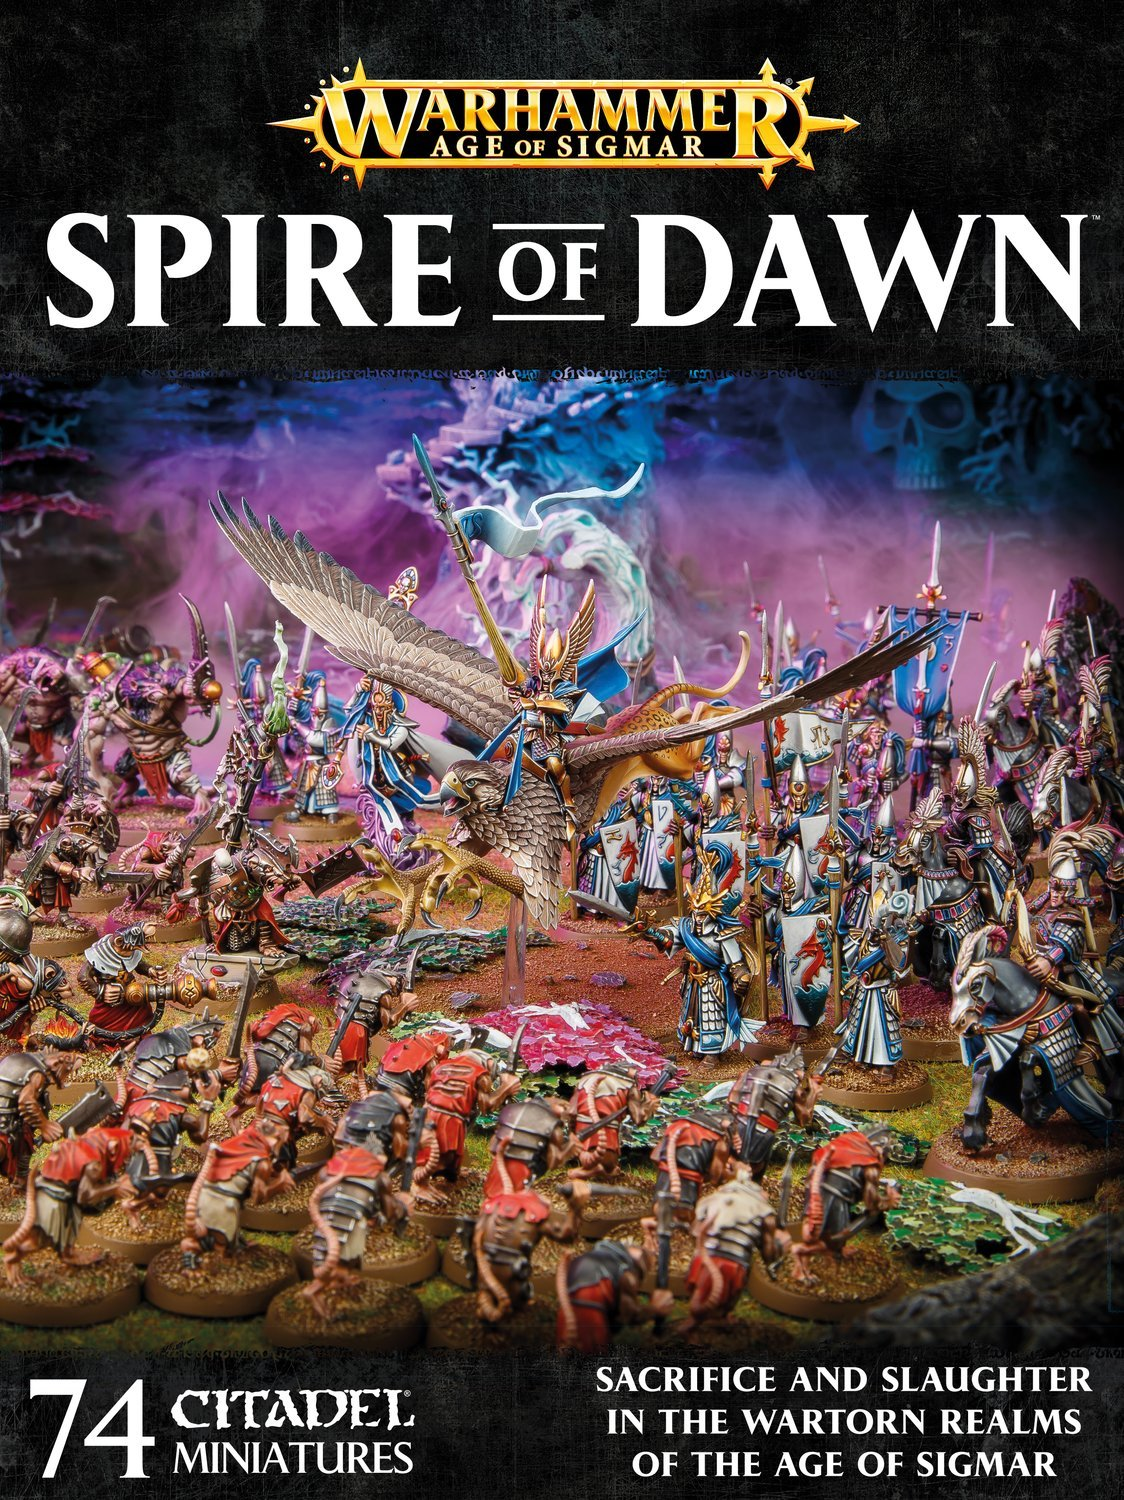 Warhammer Age of Sigmar: Spire of Dawn - Warhammer Age of Sigmar - Games Workshop